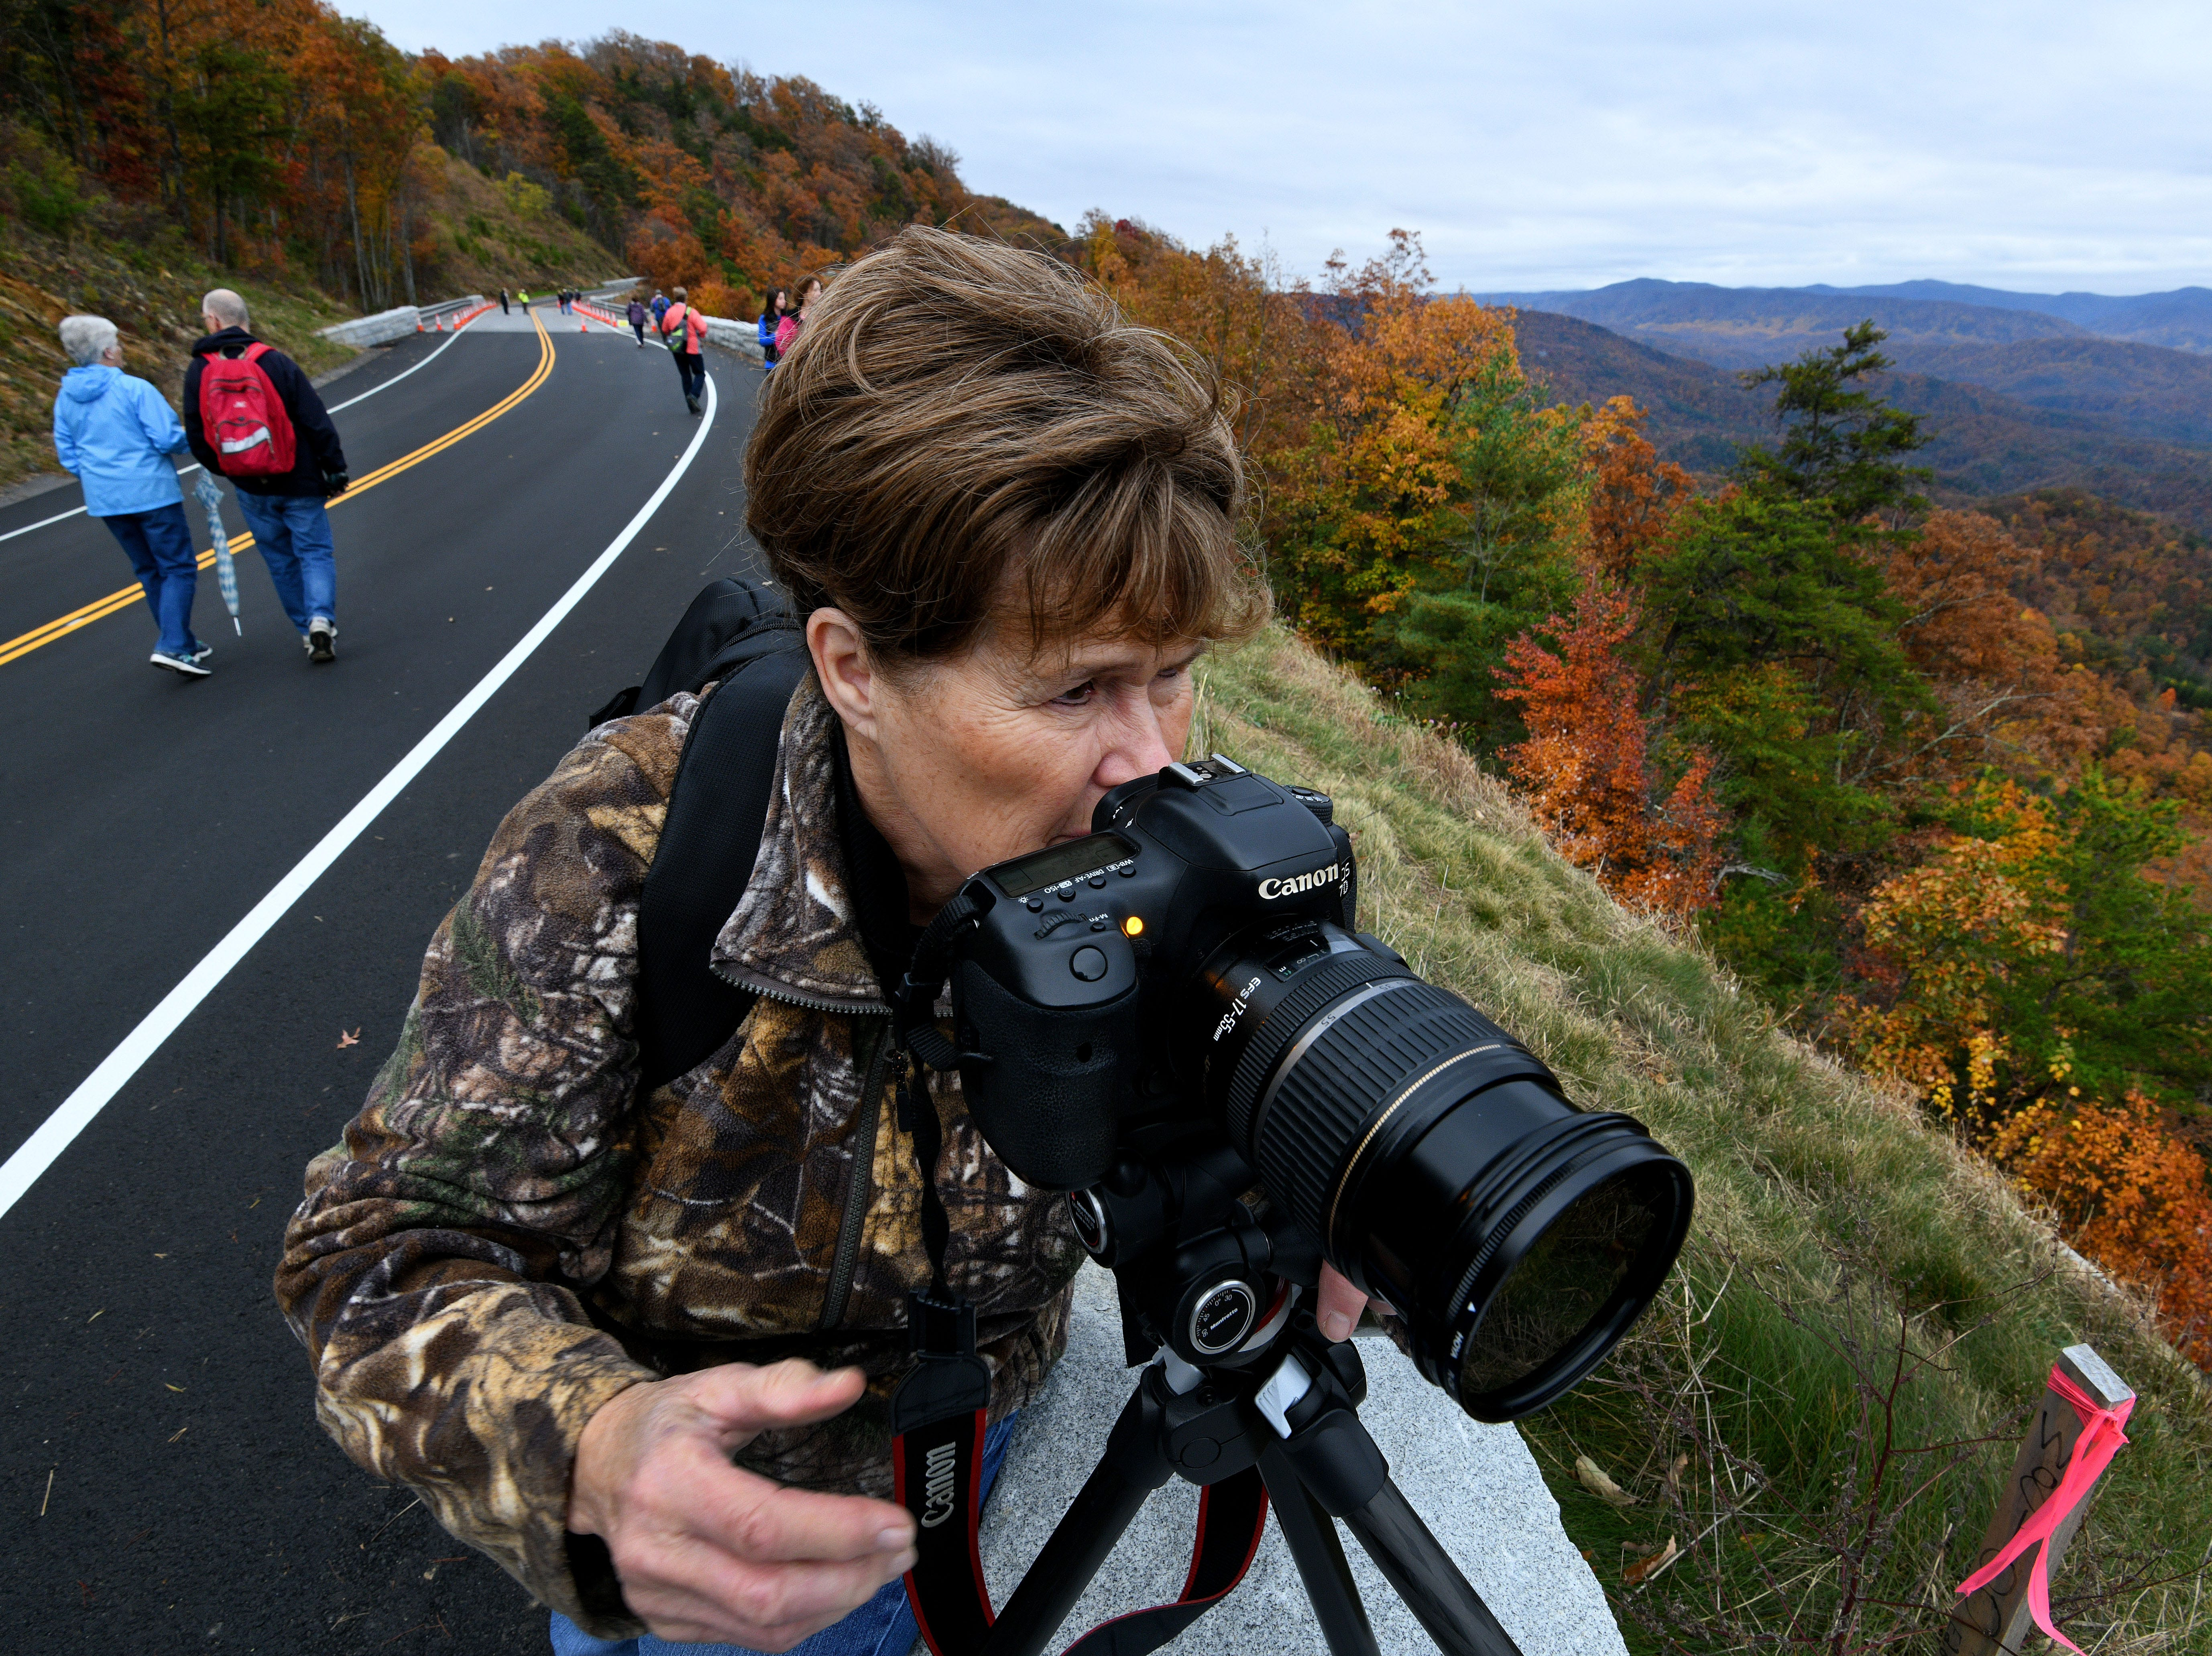 Jan Kitelynn from Maryville shoots photographs during the National Park Service Community Day Thursday, Nov. 8, 2018. The day was set aside for the public to experience the bridges along the 1.65-mile section known as the 'Missing Link' before it opens to motorists and cyclists Saturday.